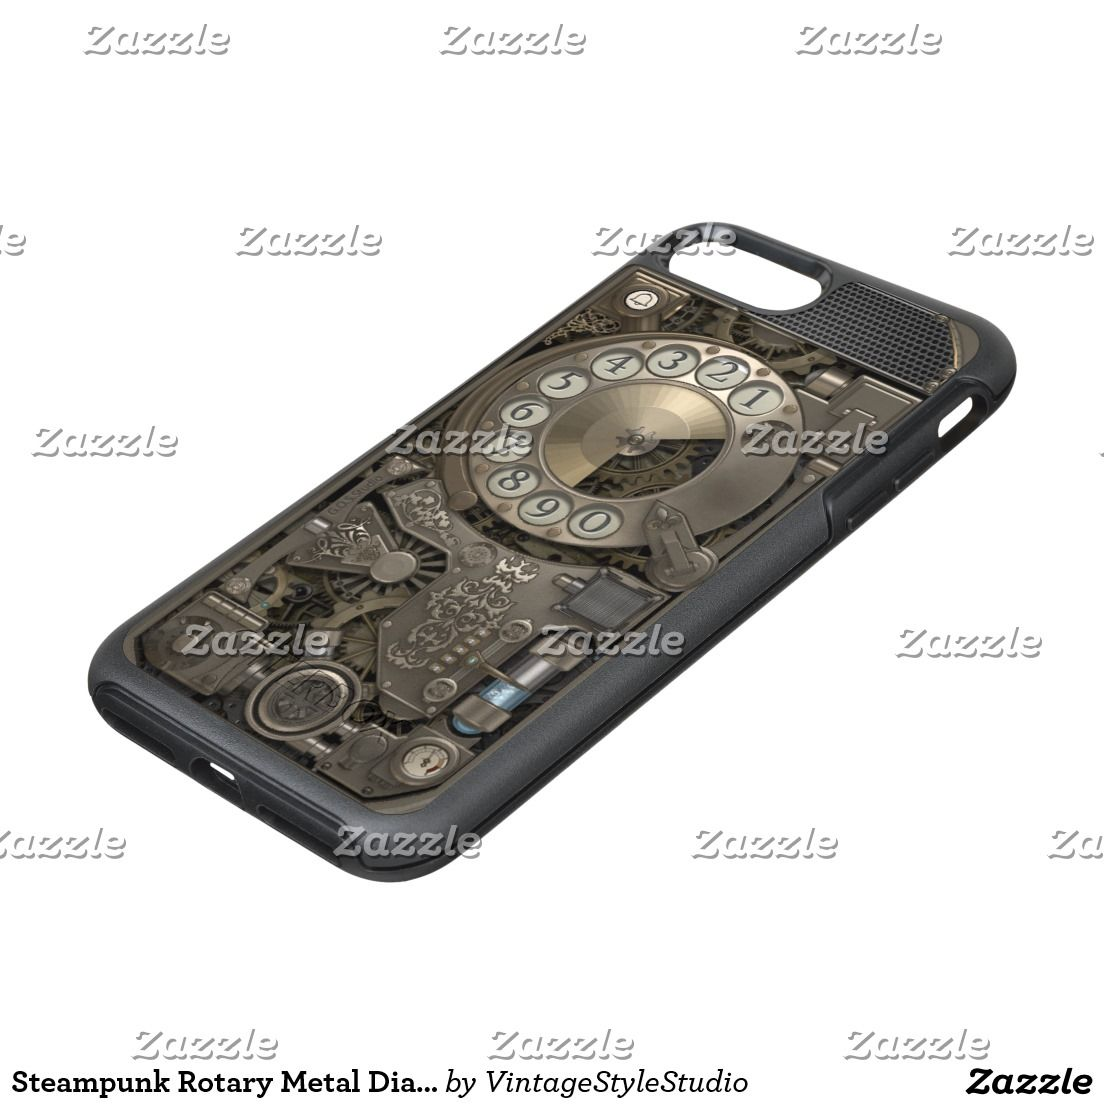 small resolution of steampunk rotary metal dial phone otterbox symmetry iphone 7 plus case steampunk samsung iphone cases s6 s7 ipad samsunggalaxys victorian